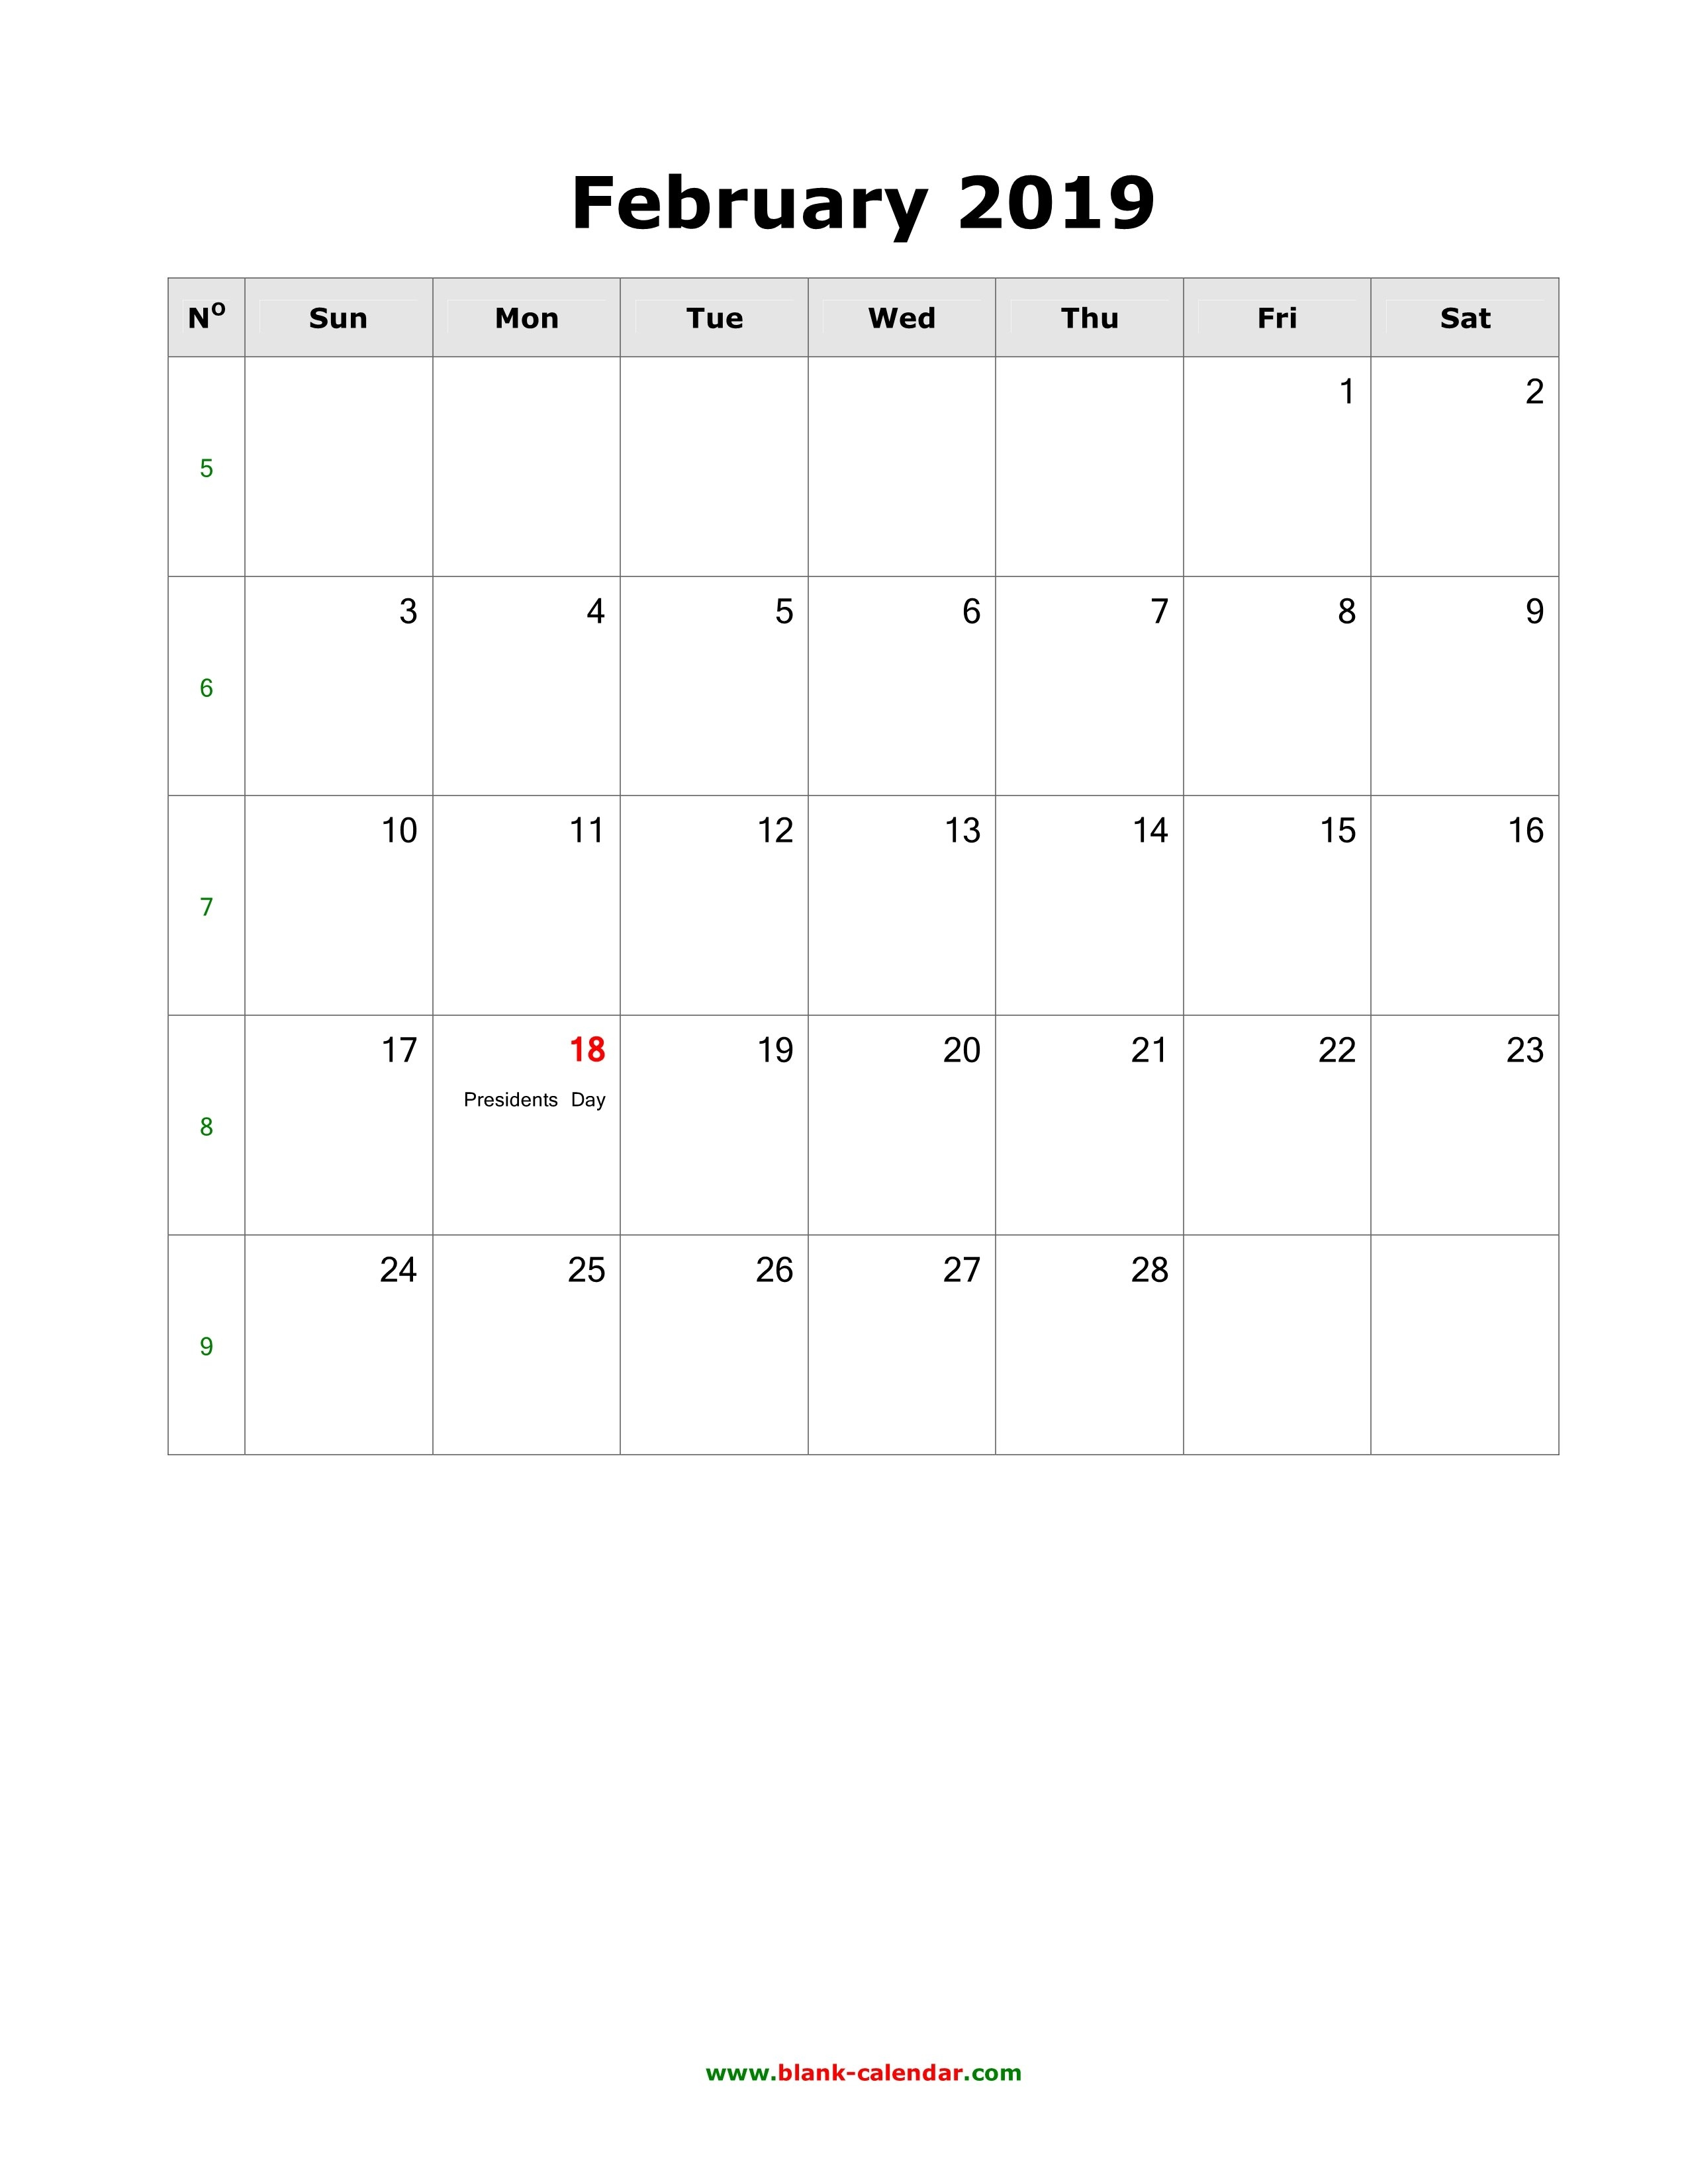 Download February 2019 Blank Calendar With Us Holidays (Vertical) Calendar 2019 Including Holidays